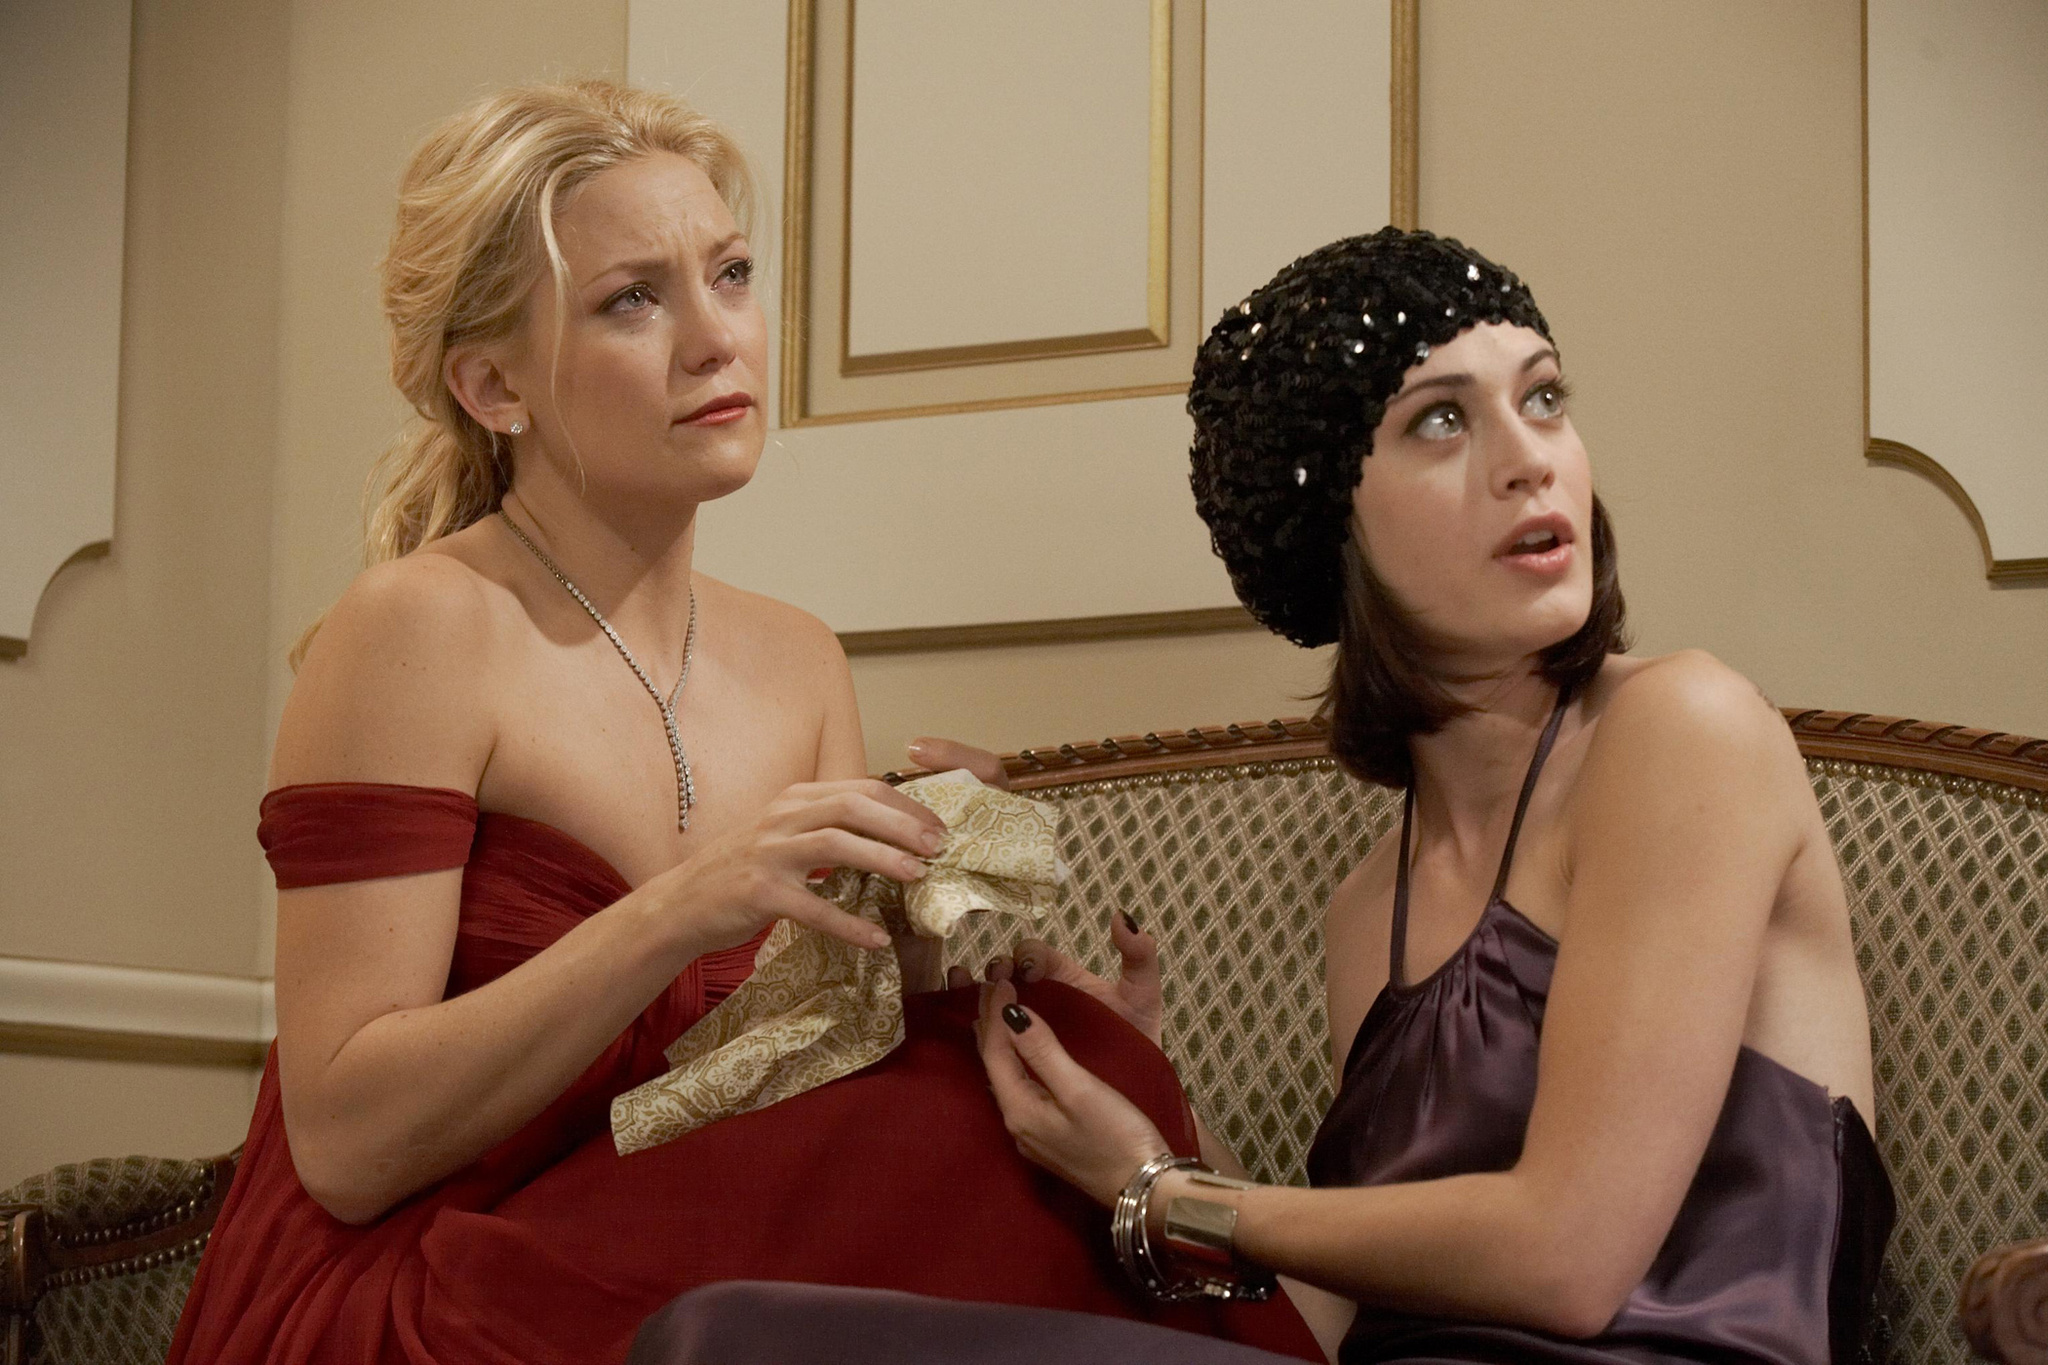 Kate Hudson and Lizzy Caplan in My Best Friend's Girl (2008)